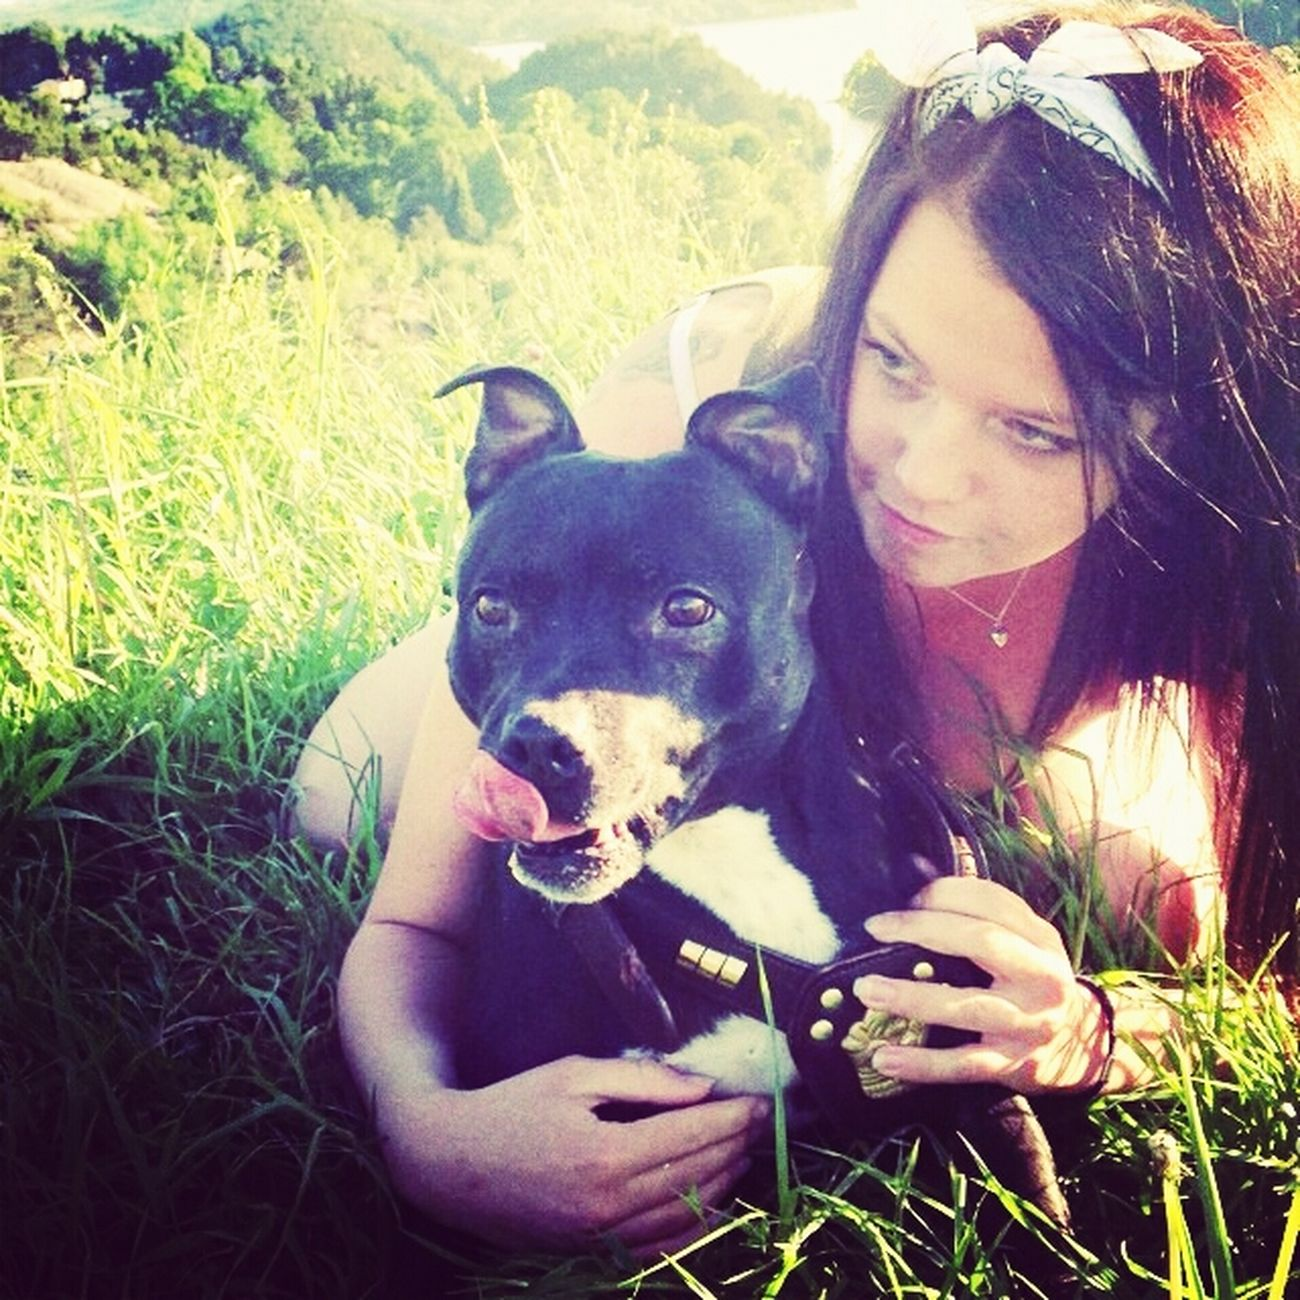 Staffordshire Bull Terrier Summer Time ☀ Summer Love ∞ Dog Days Of Summer